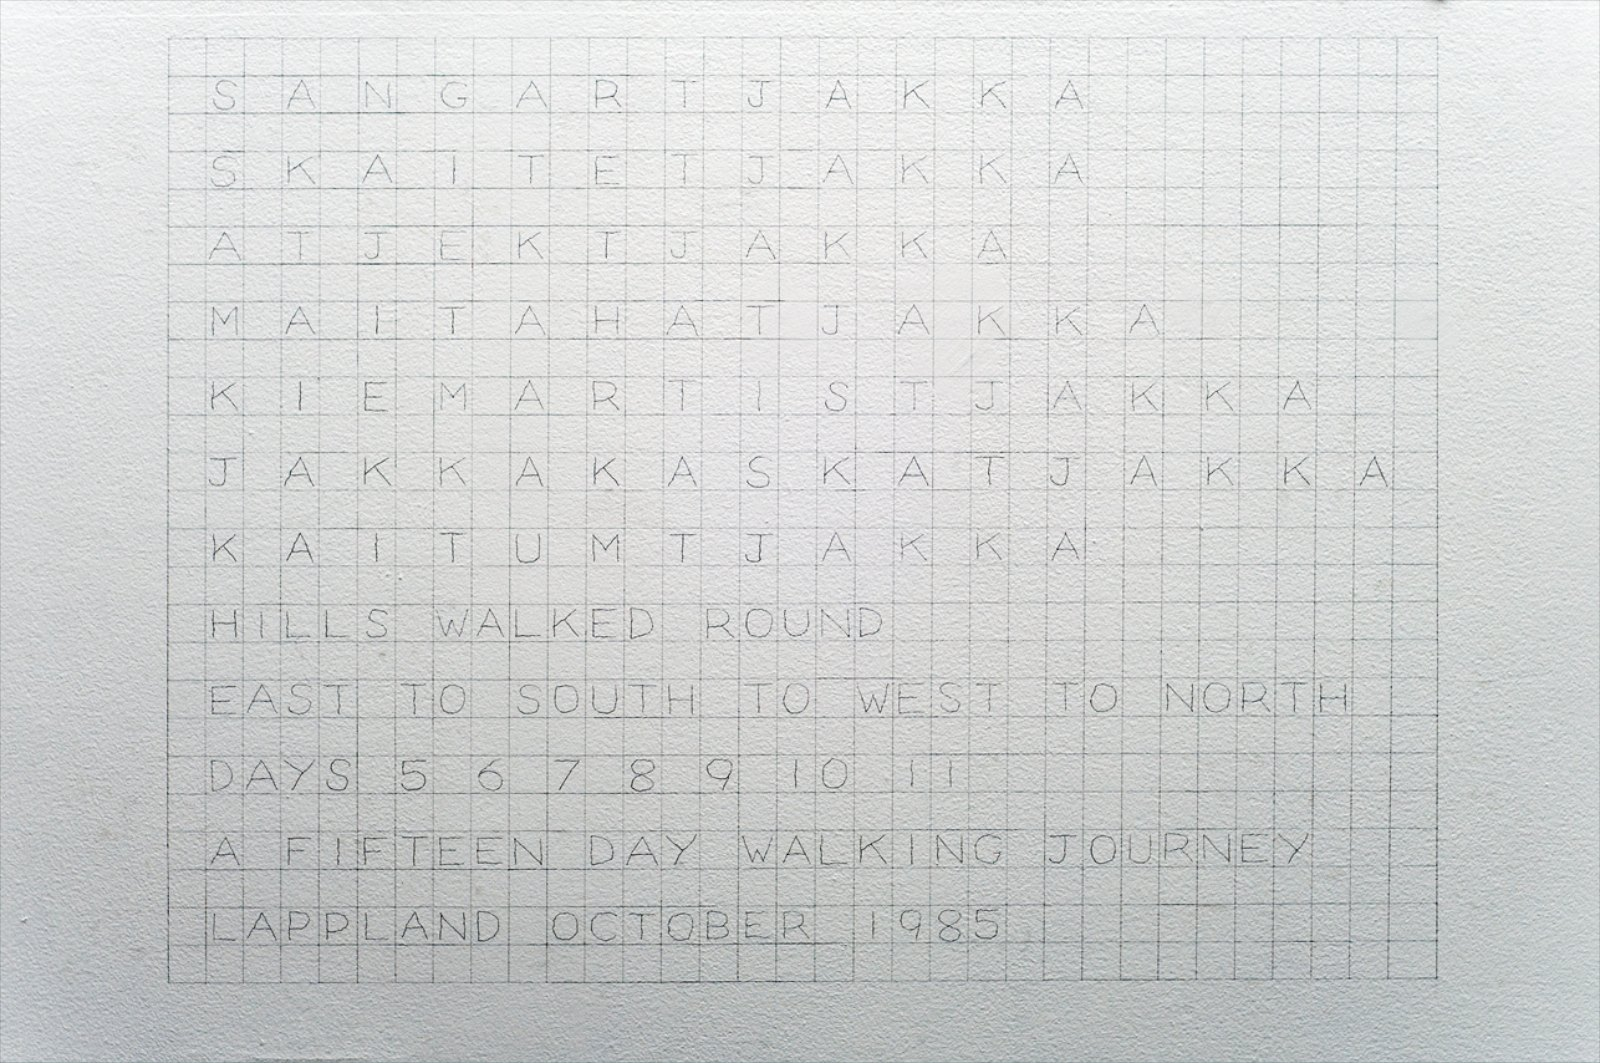 Hills Walked Round, Lappland, 1985, pencil drawing on wall, 100 x 132 cm